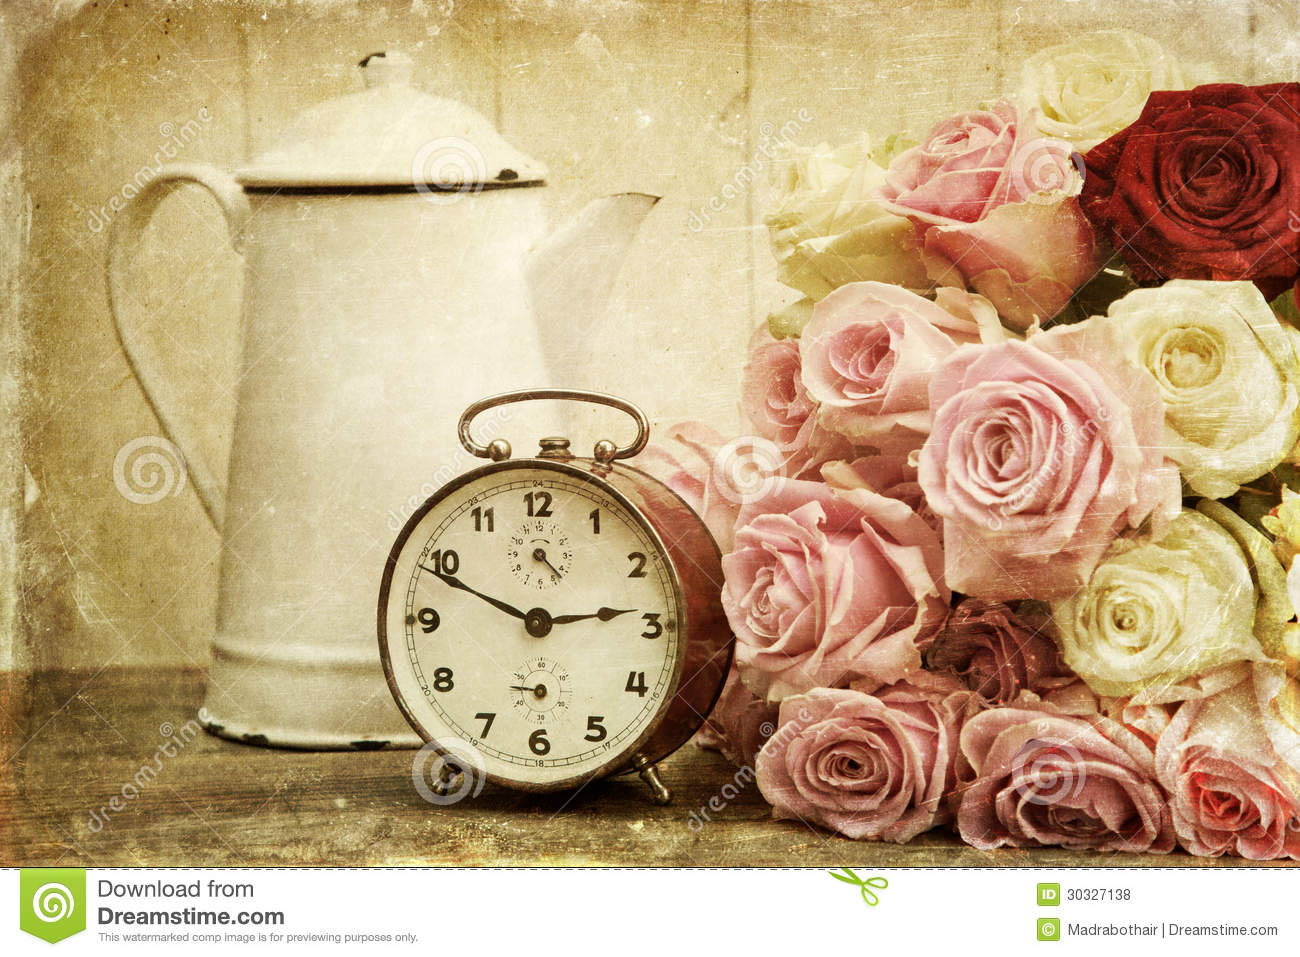 Vintage Textured Still Life With Roses And Alarm Clock